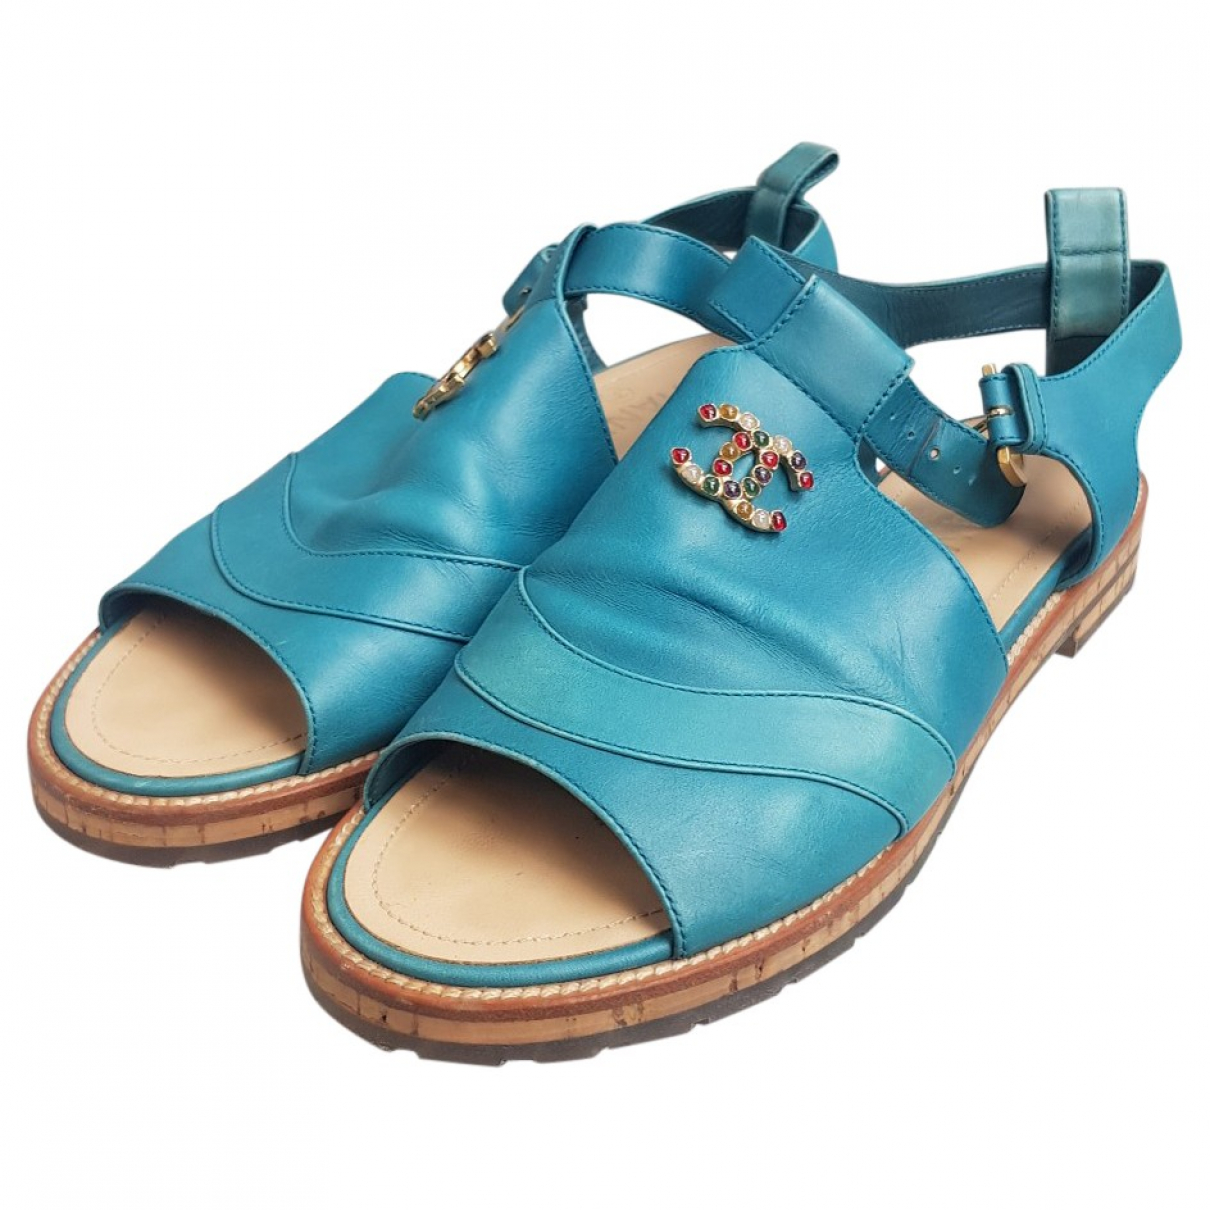 Chanel \N Turquoise Leather Sandals for Women 40 EU